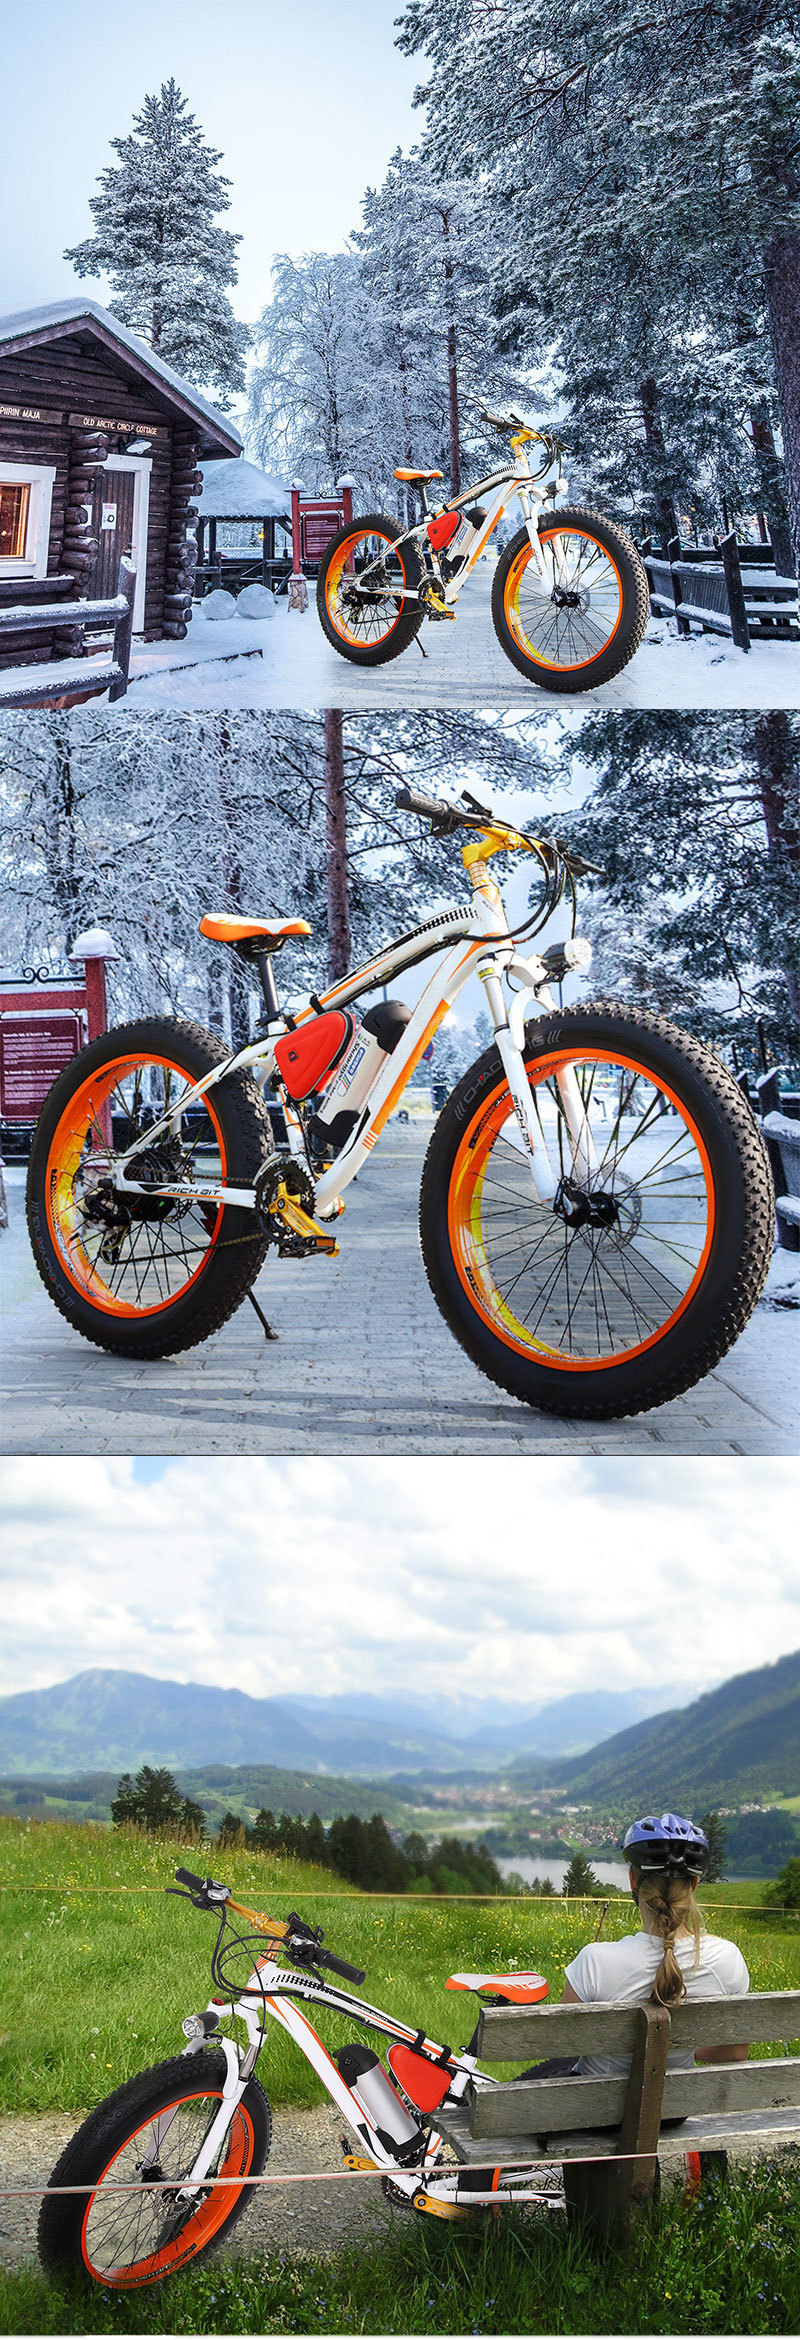 EcoRider E6-5 E6-5 48v 26inch 2 wheel Electric bicycle Big Fat Tire Snow E bike Off Road Bicycle ( Sample Free Postage) 6